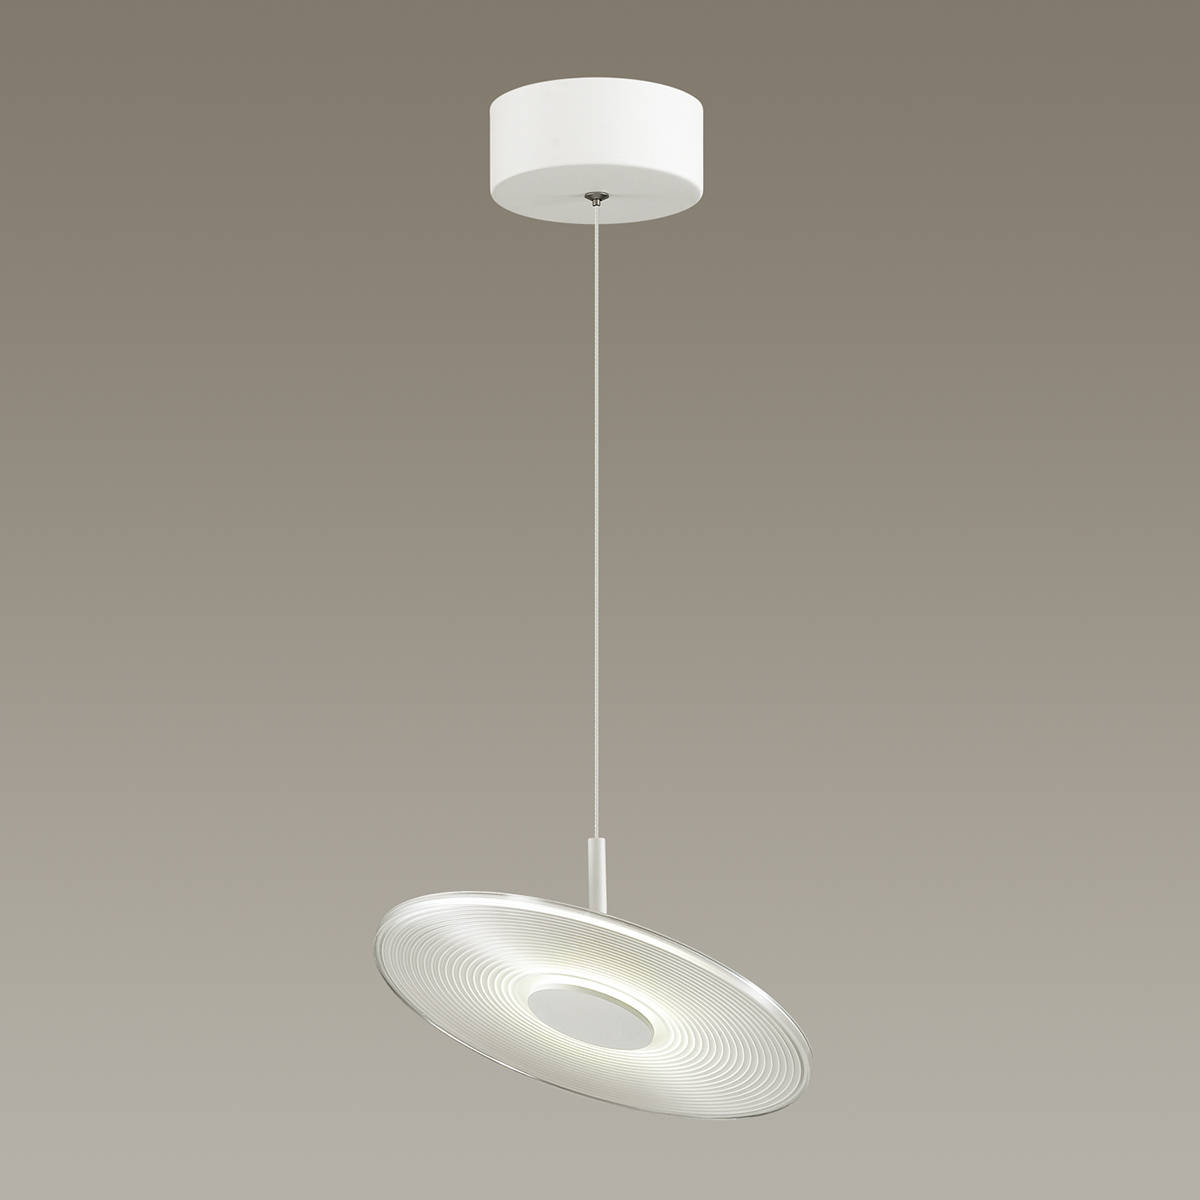 Подвес ODEON LIGHT арт. 4107/12L